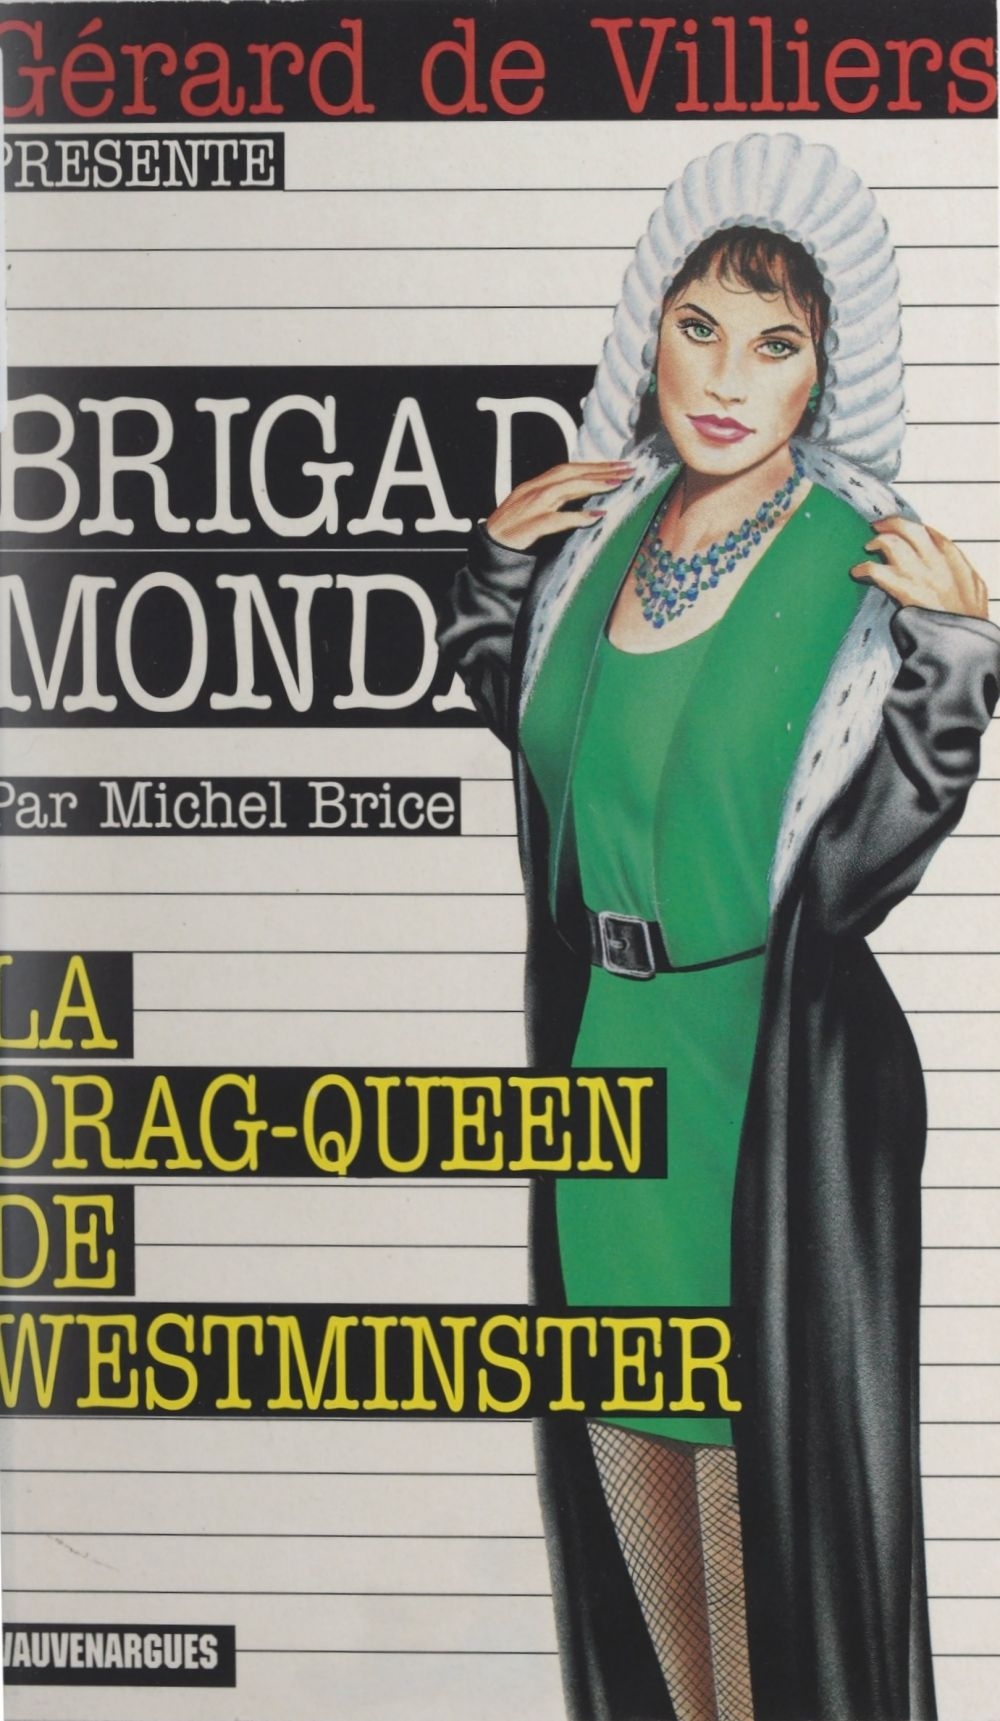 La drag-queen de Westminster